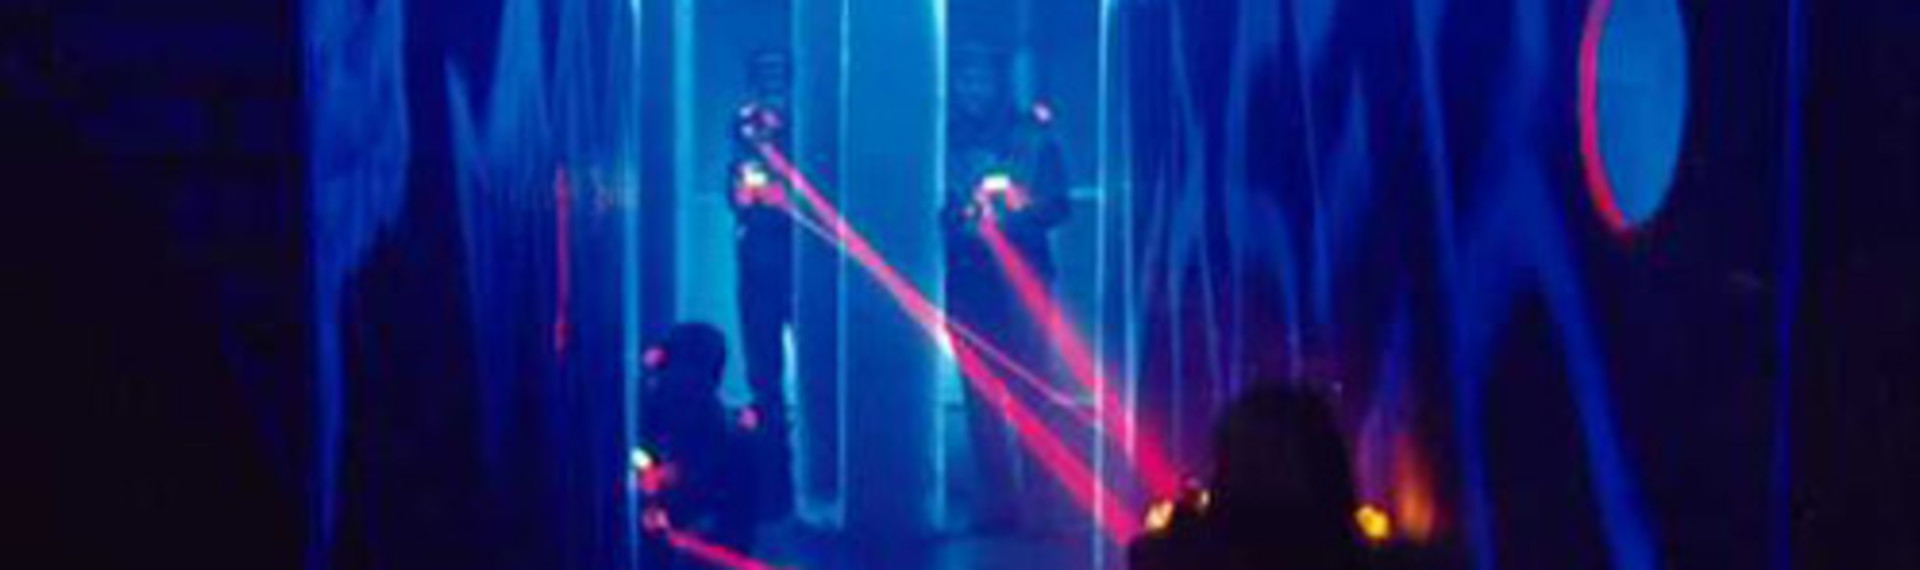 Cologne Lasertag Indoor, 3 Games image